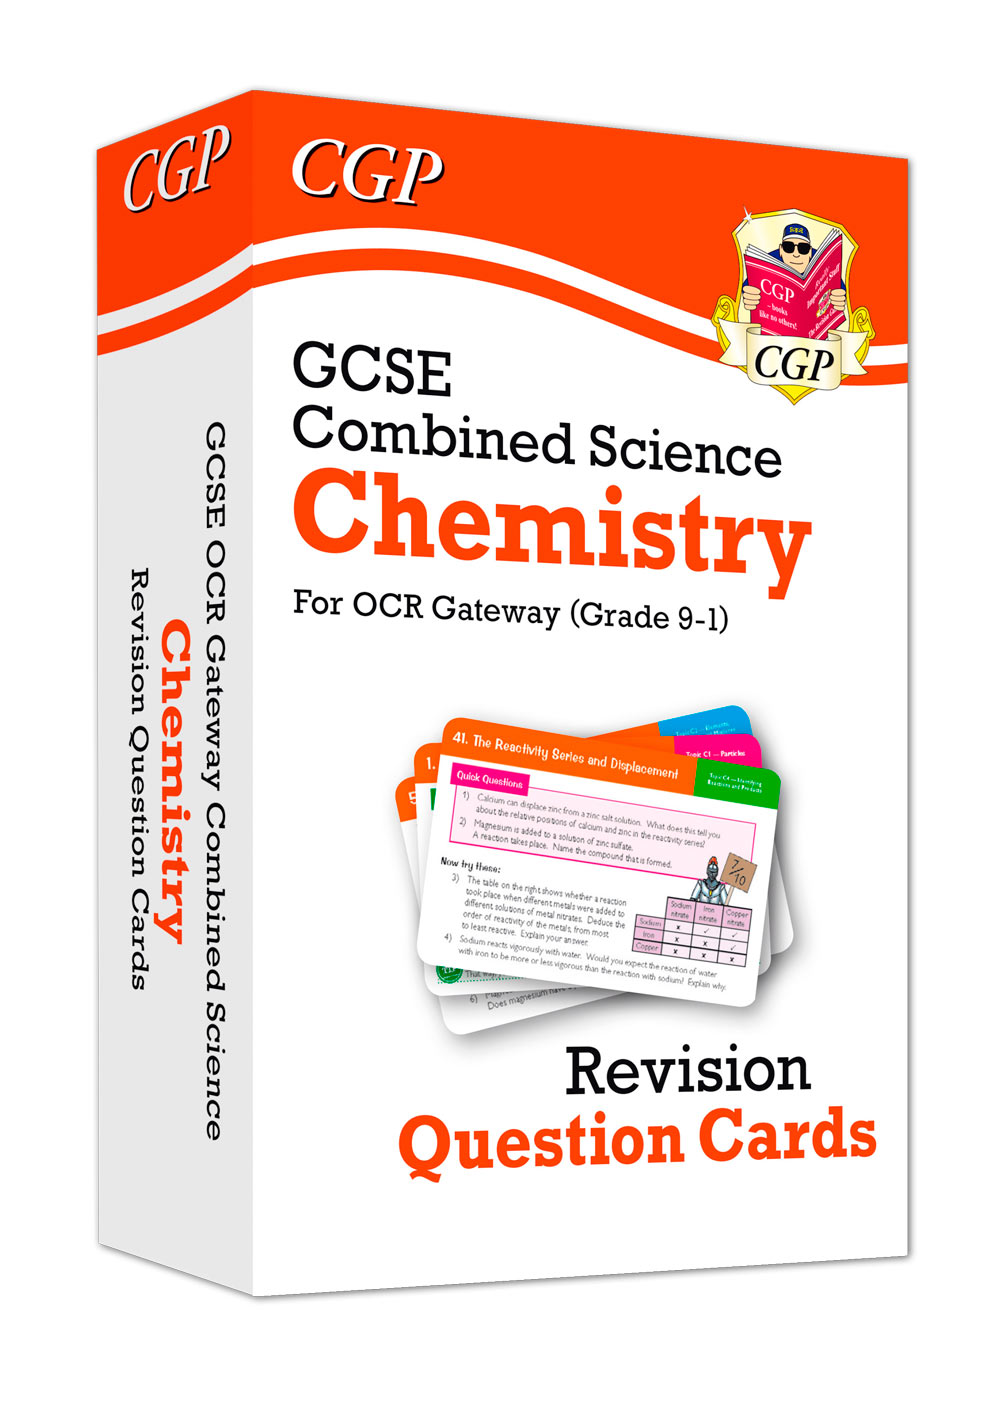 SCCRF41 - New 9-1 GCSE Combined Science: Chemistry OCR Gateway Revision Question Cards